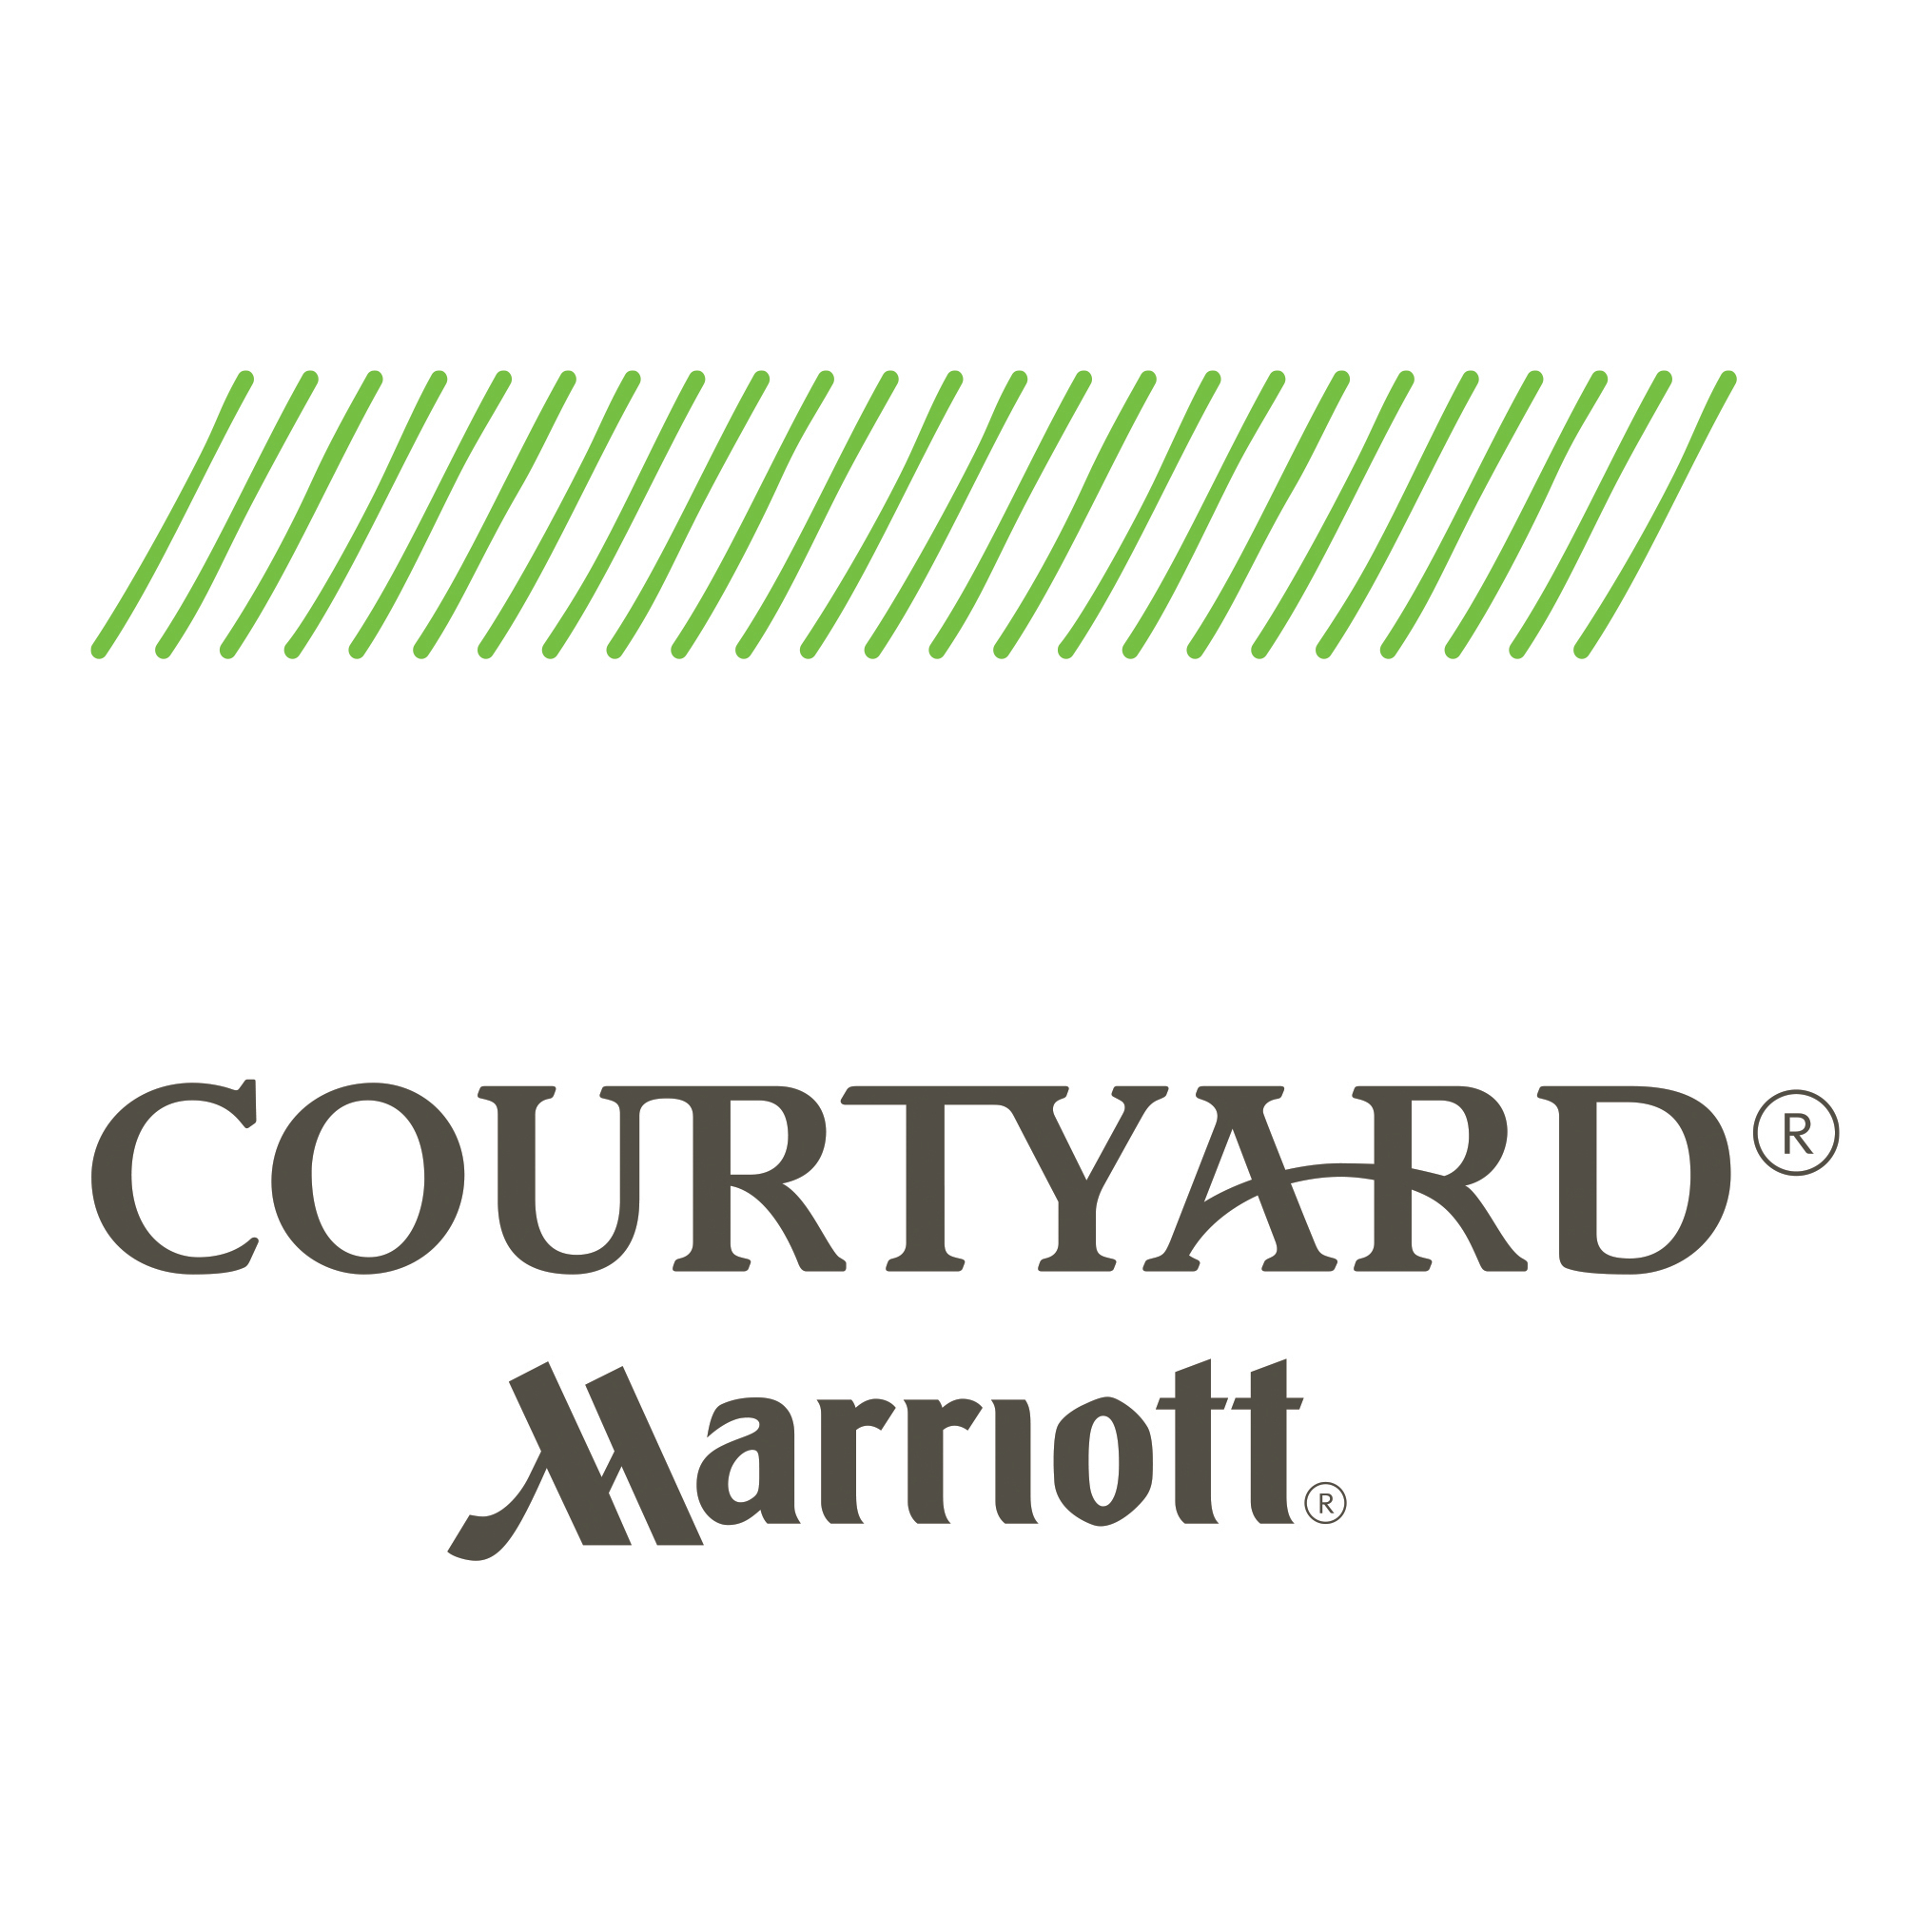 Courtyard by Marriott Boston Downtown